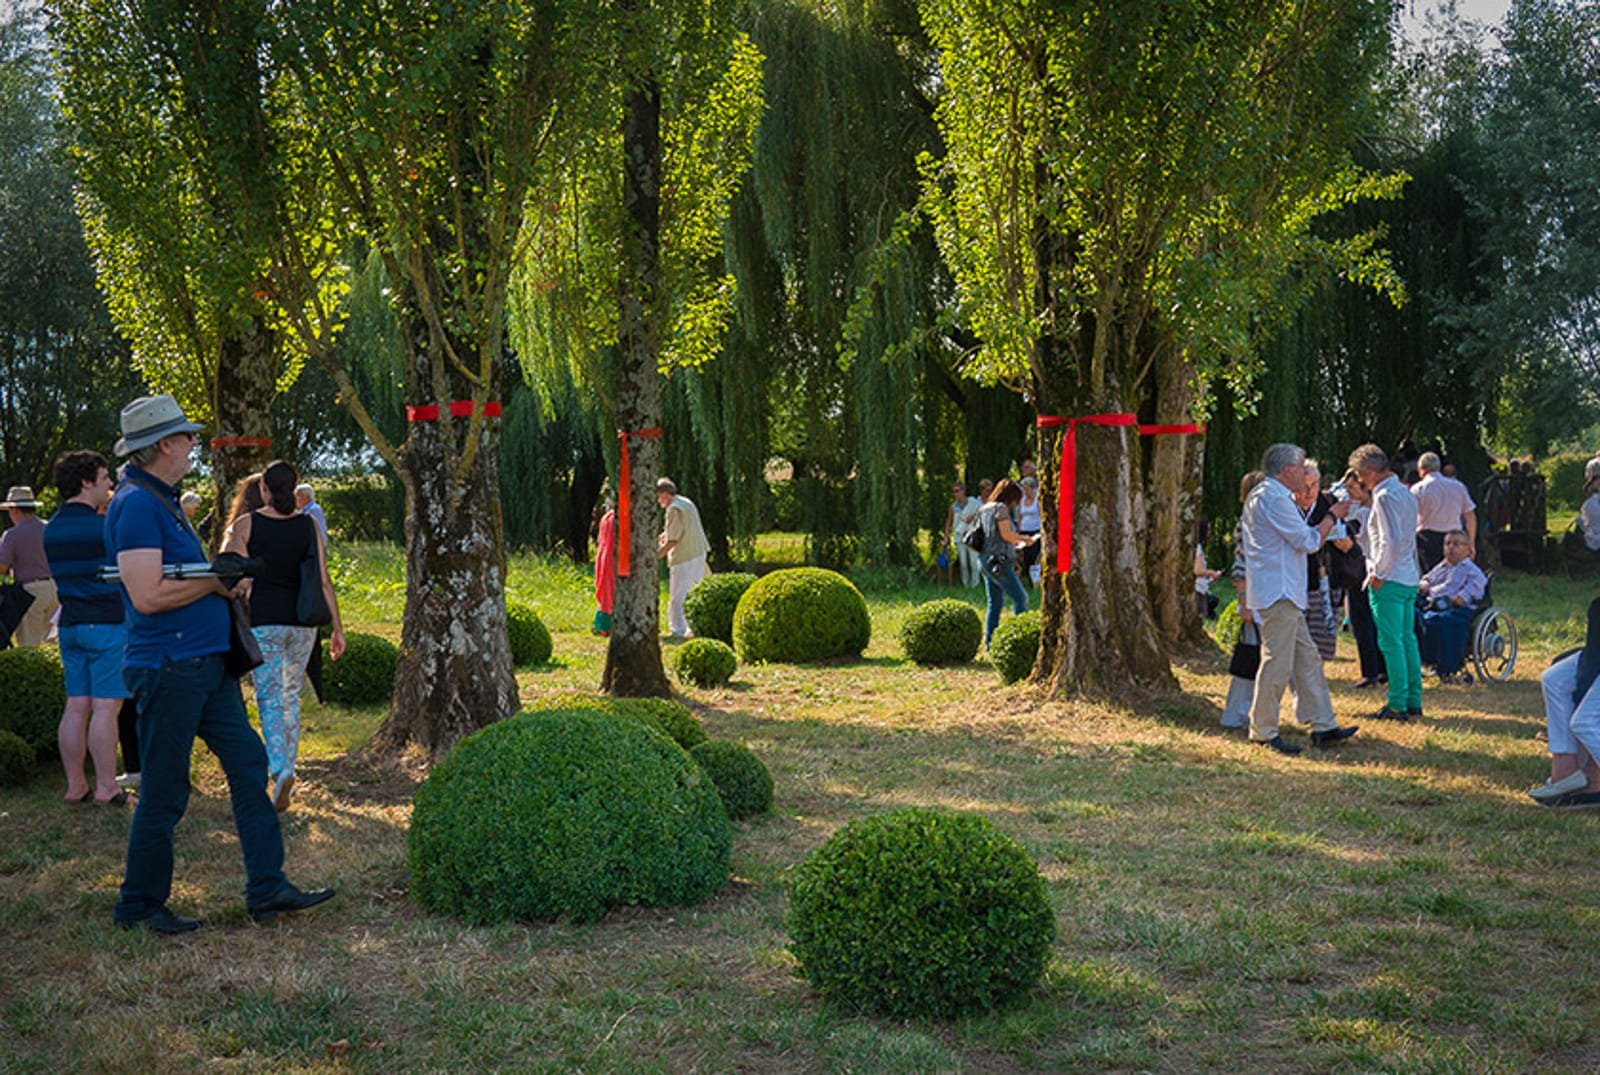 Jardin de musique festival Les arts florissants william Christie®Hermelinecarpentier